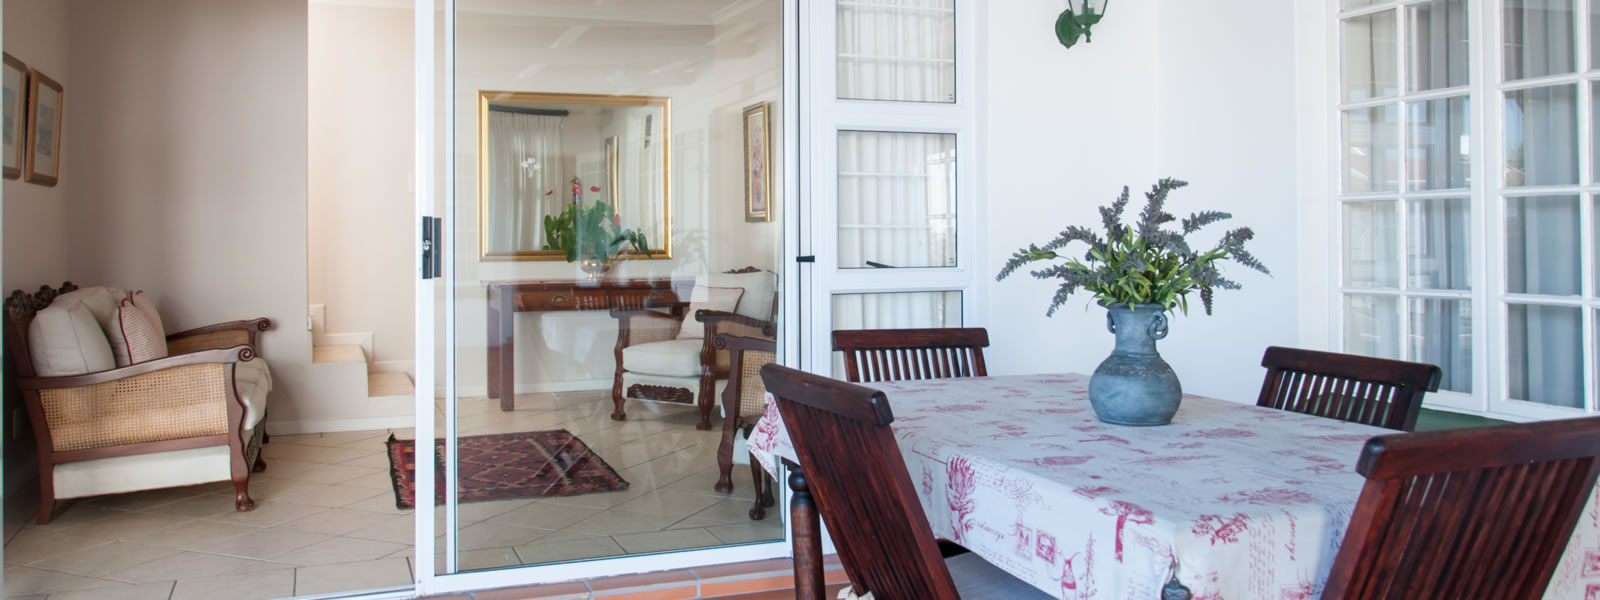 summerstrand bed and breakfast bandb port elizabeth